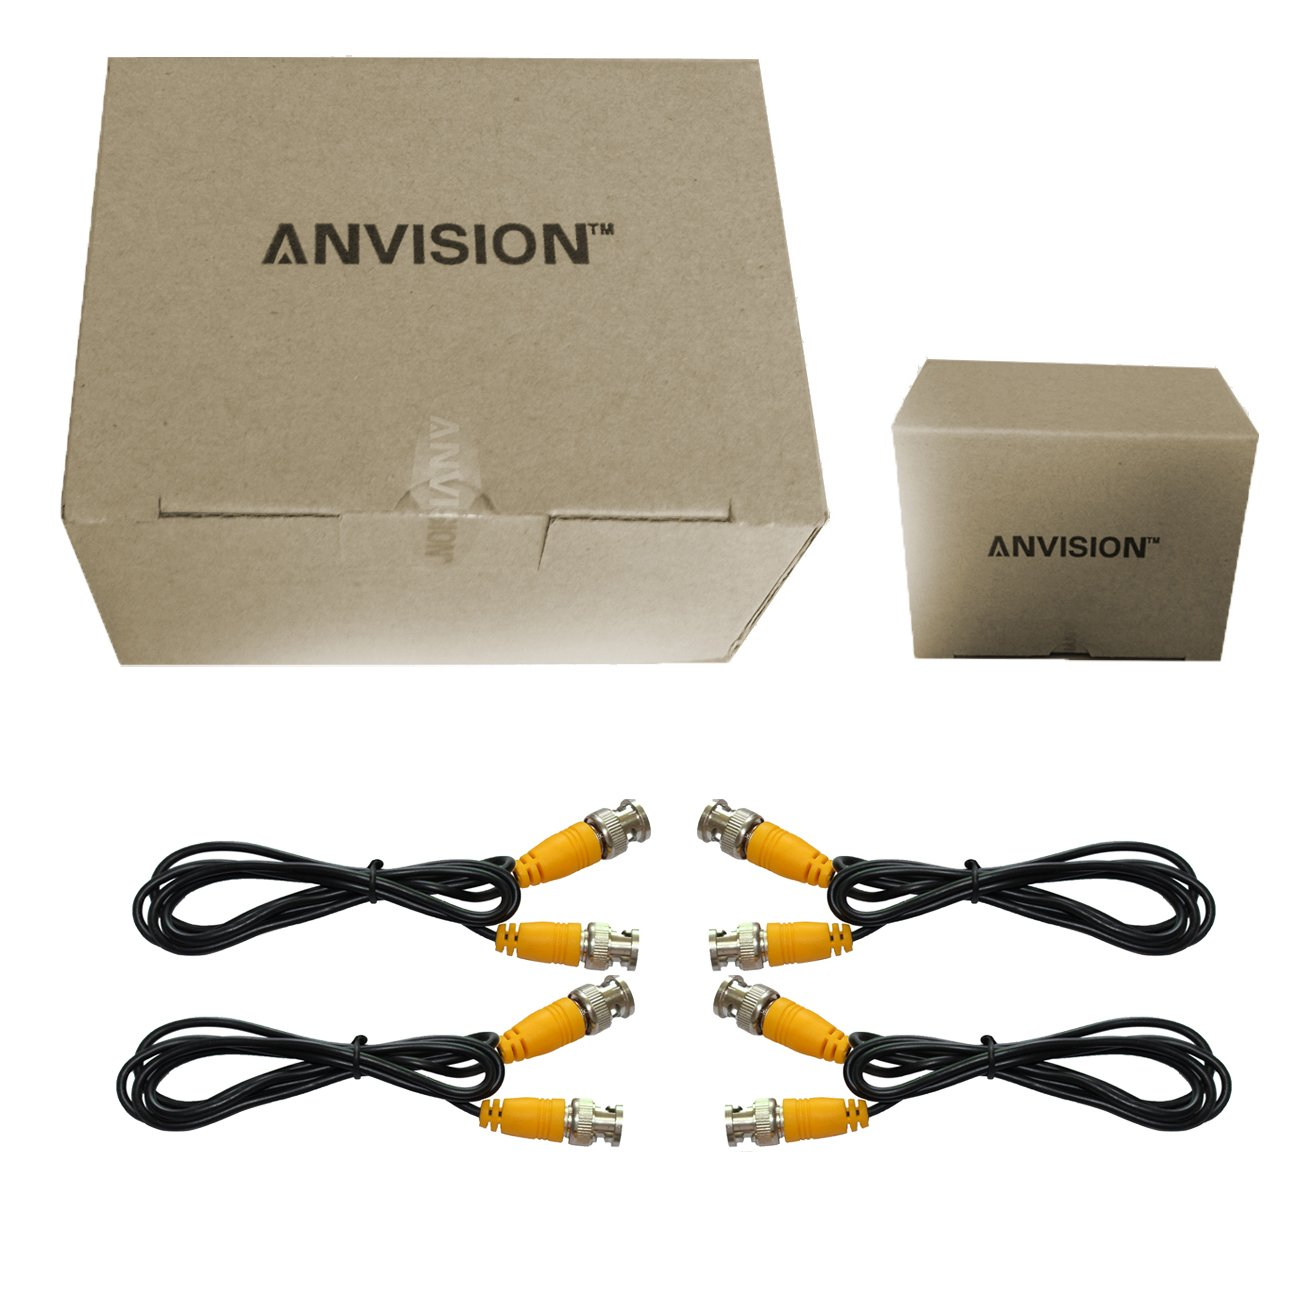 ANVISION 4-Packs Black 1m BNC Male to BNC Male Jumper Cable with Yellow Connector for CCTV DVR to TV System